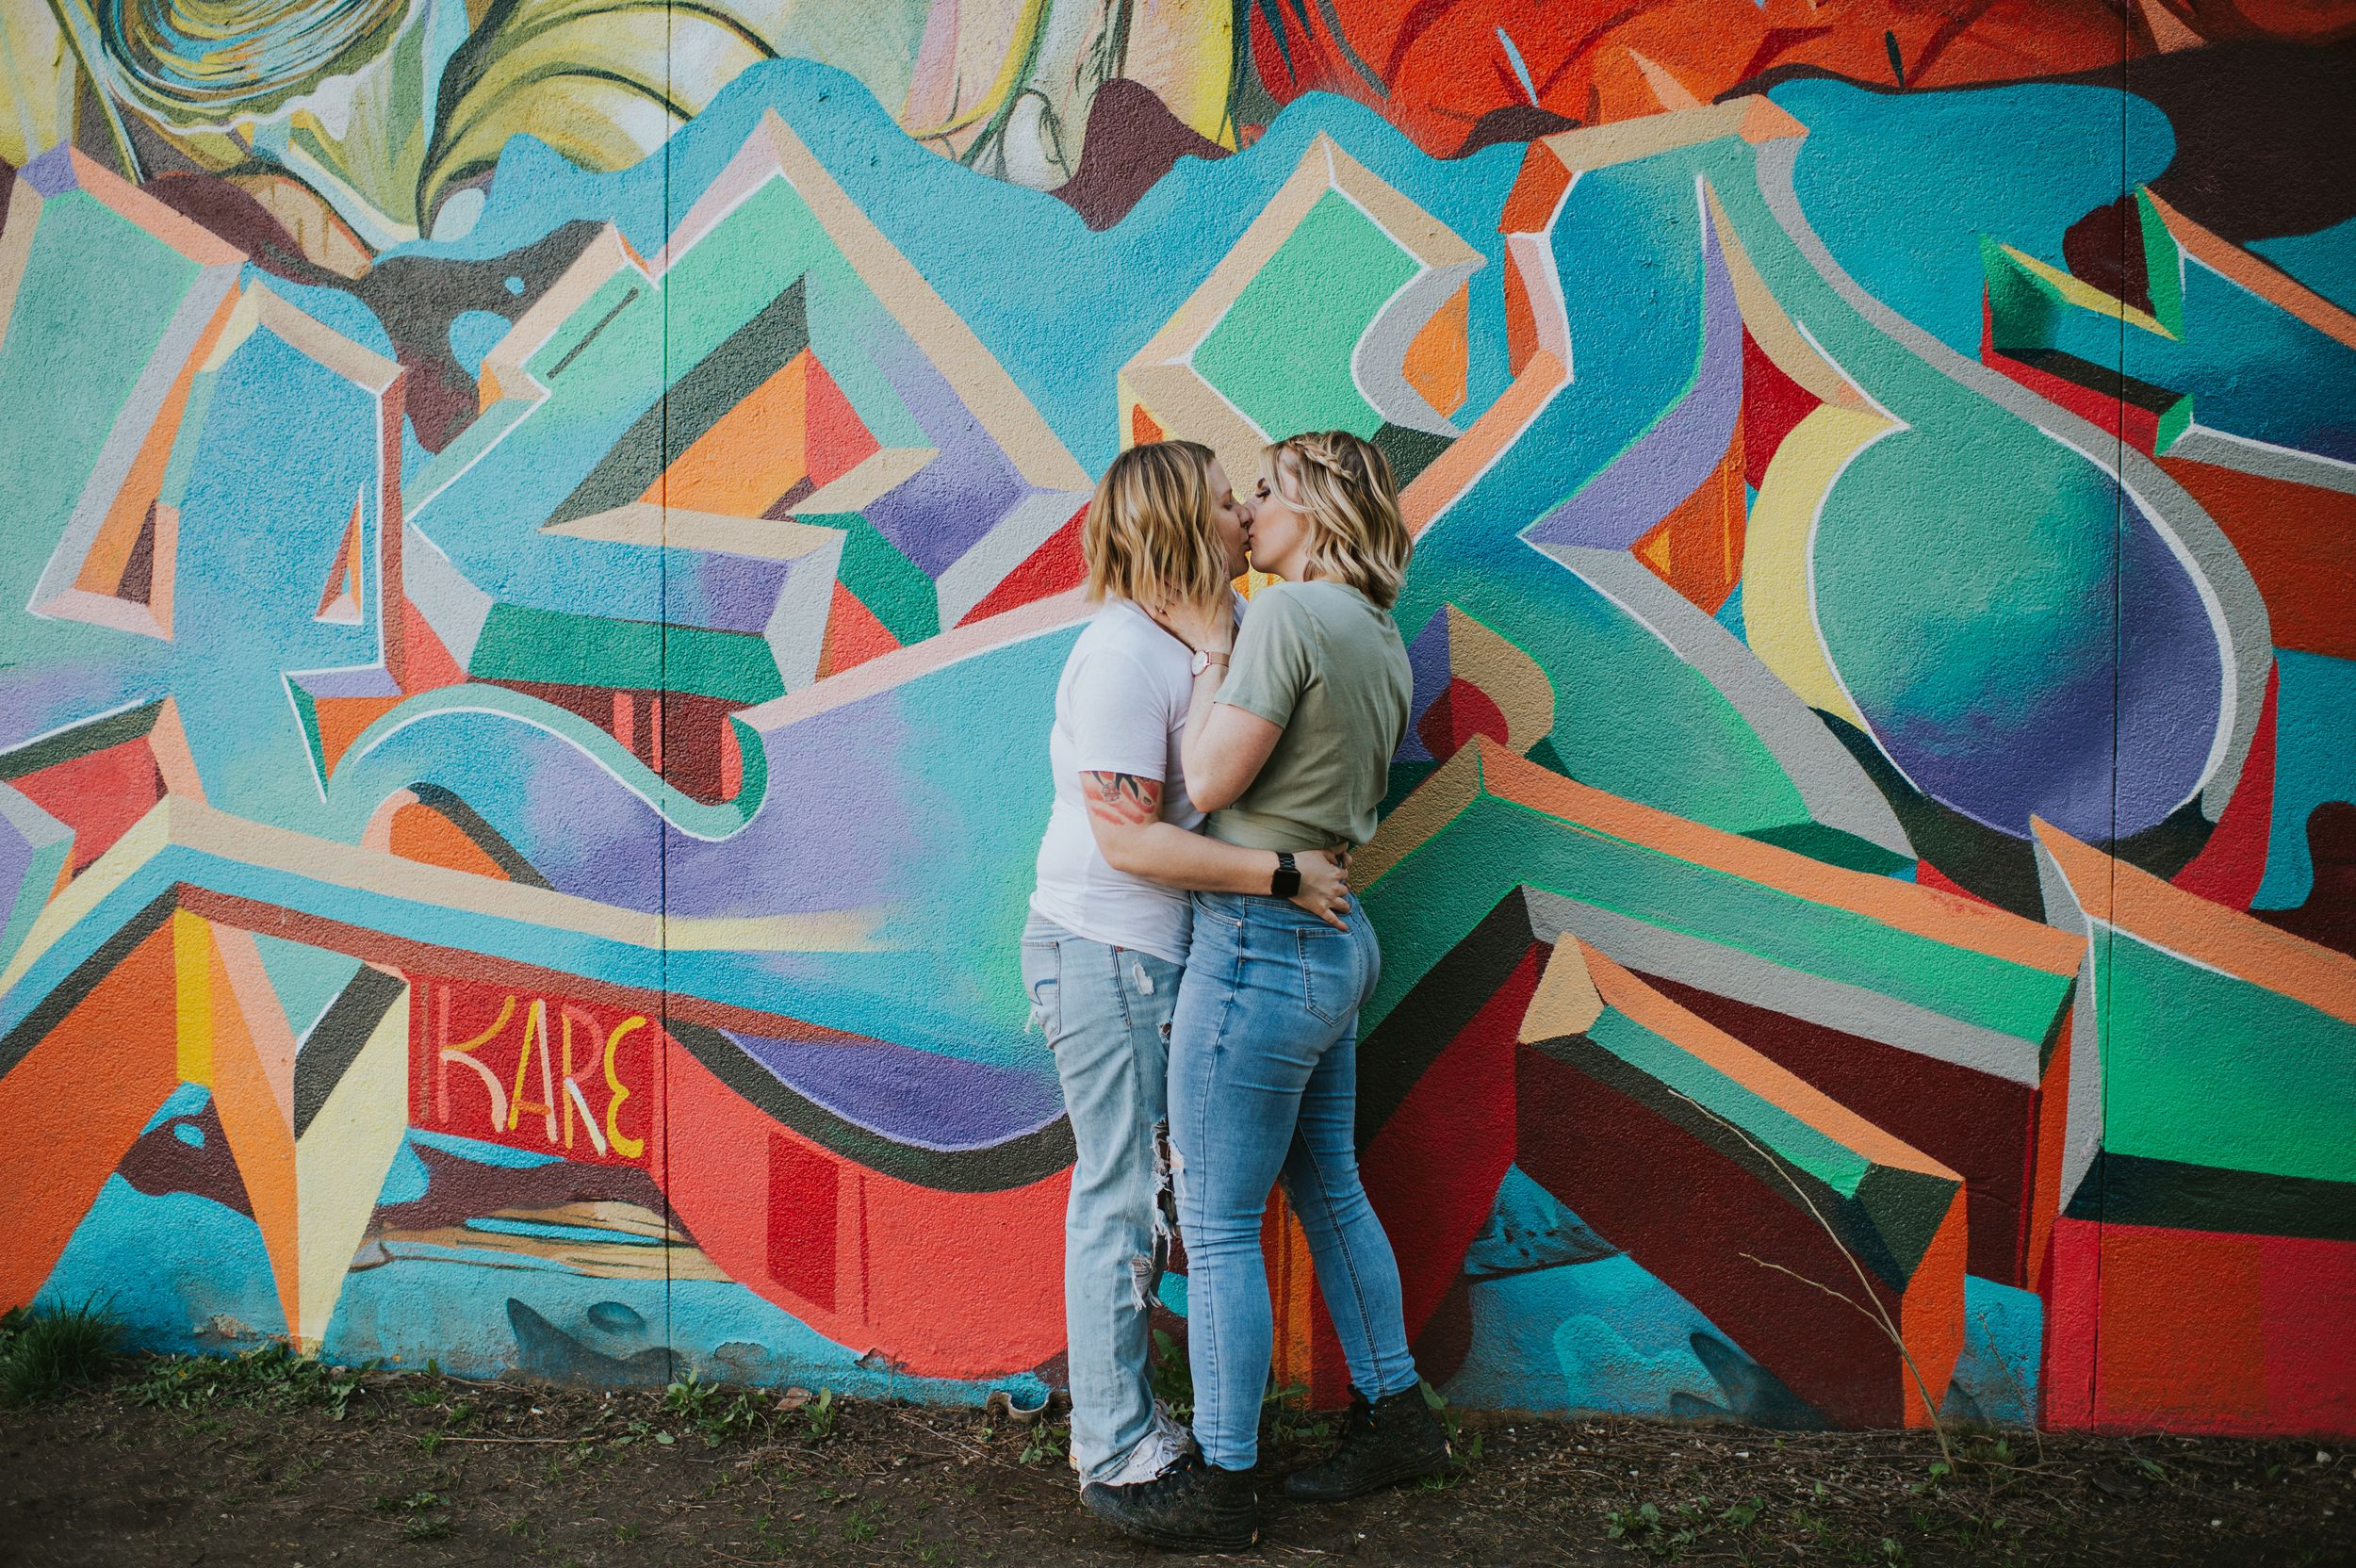 Two women embrace in a passionate kiss in front of a graffiti wall.